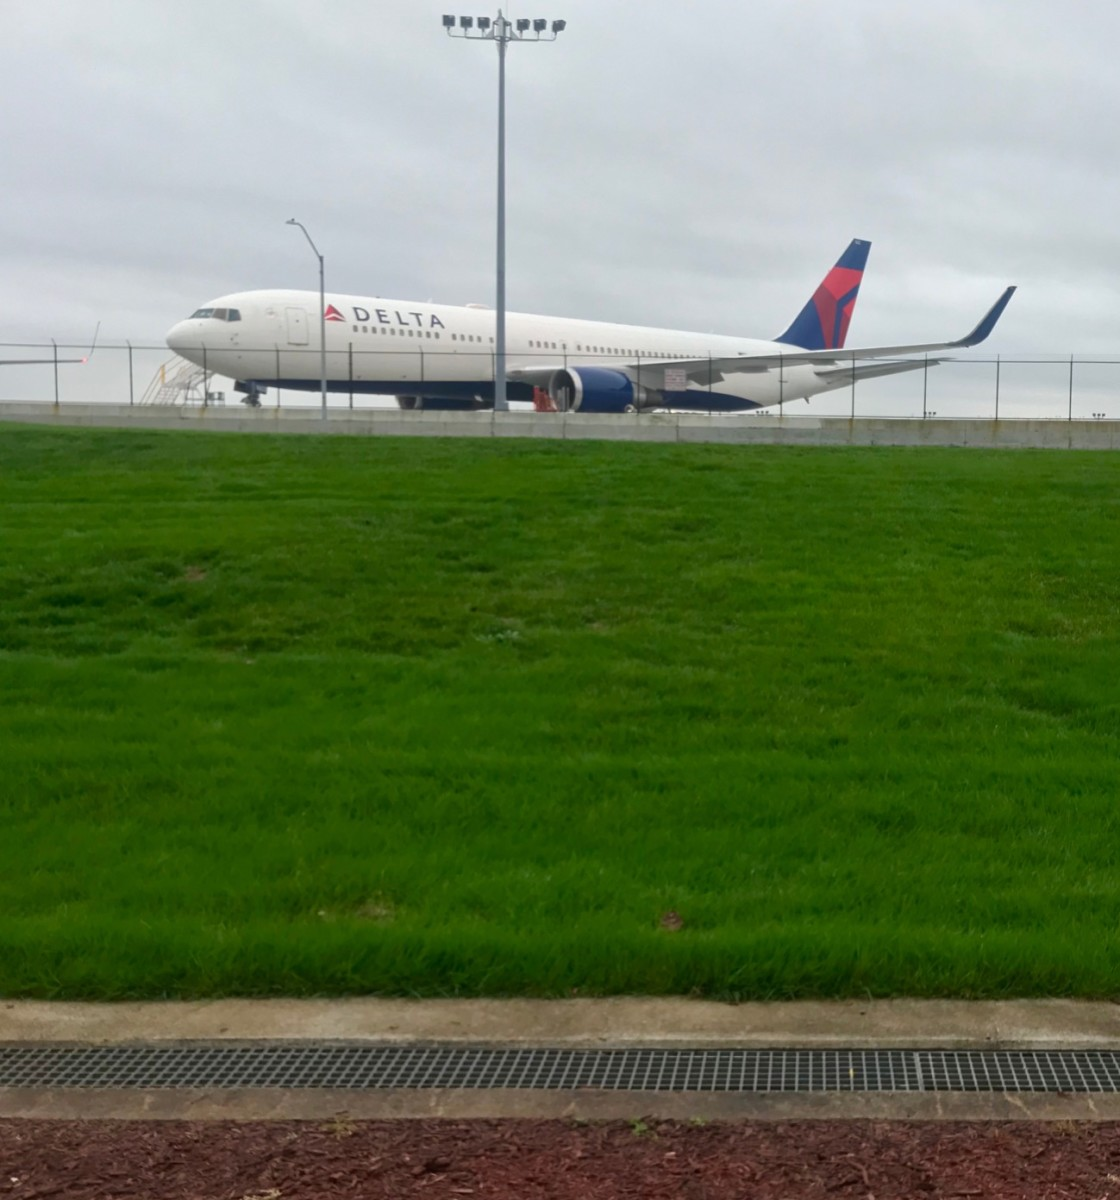 Delta on runway